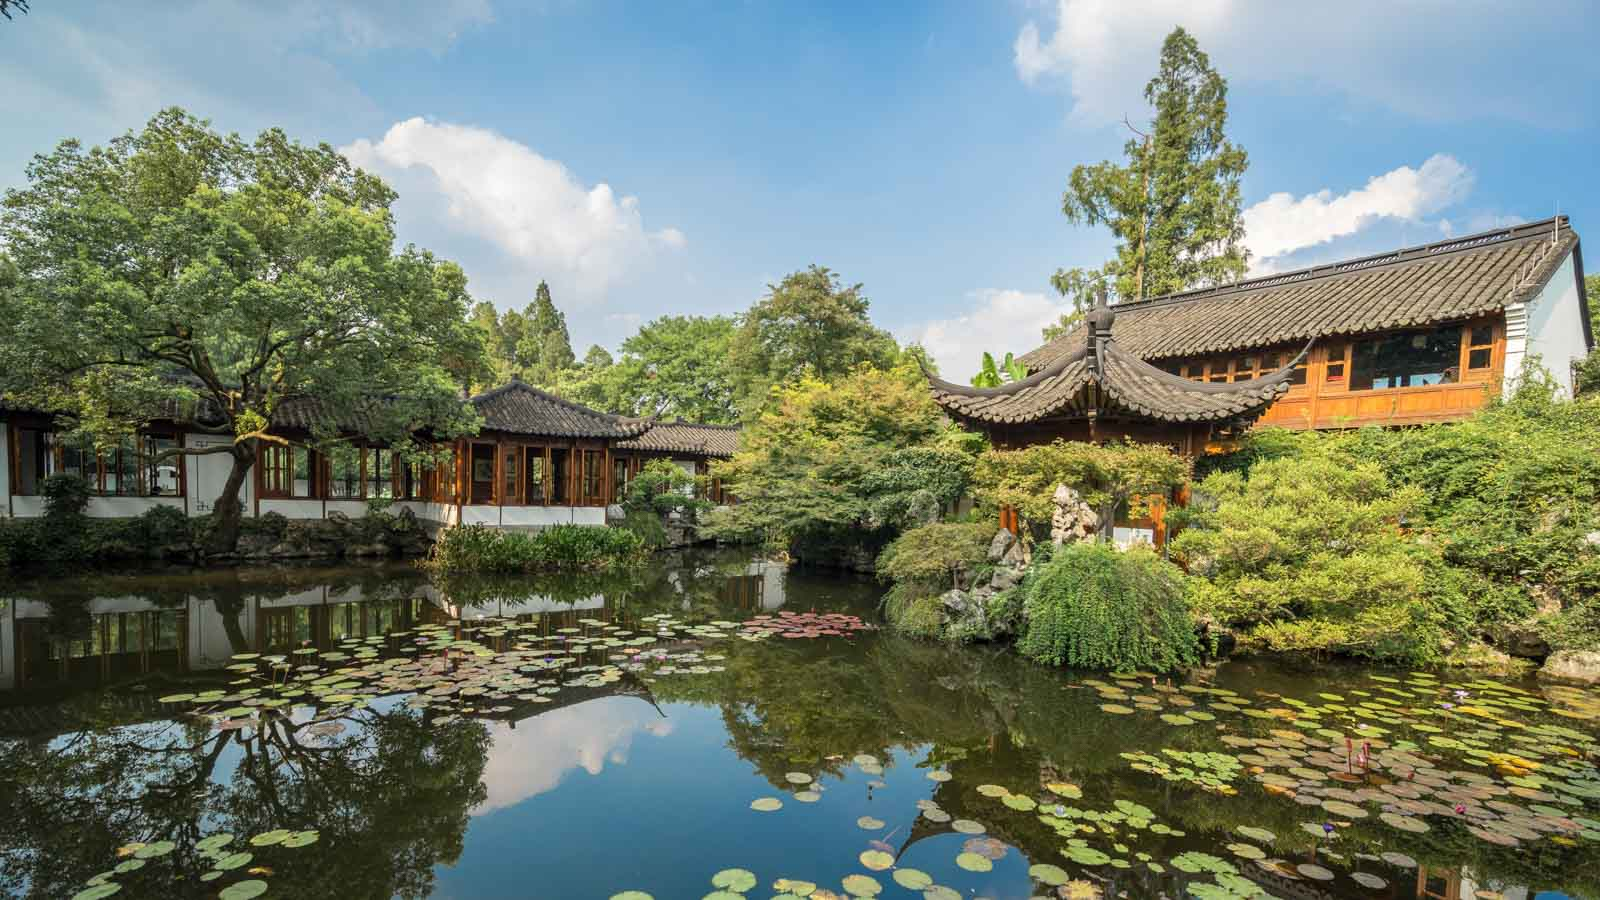 "Hangzhou  – The ""West Lake"" is undoubtedly the most renowned landmark, noted for the scenic beauty that blends naturally with many famous historical and cultural sites. We will see large patches of lotus blooms and leaves that seemingly stretch to the horizon. The beautiful West Lake has inspired many famous artists, poets, and writers. Hangzhou grows some of China's finest Longing Tea (green tea) which is renowned throughout China. We will visit the Longing Imperial Garden to experience the regions tea culture."